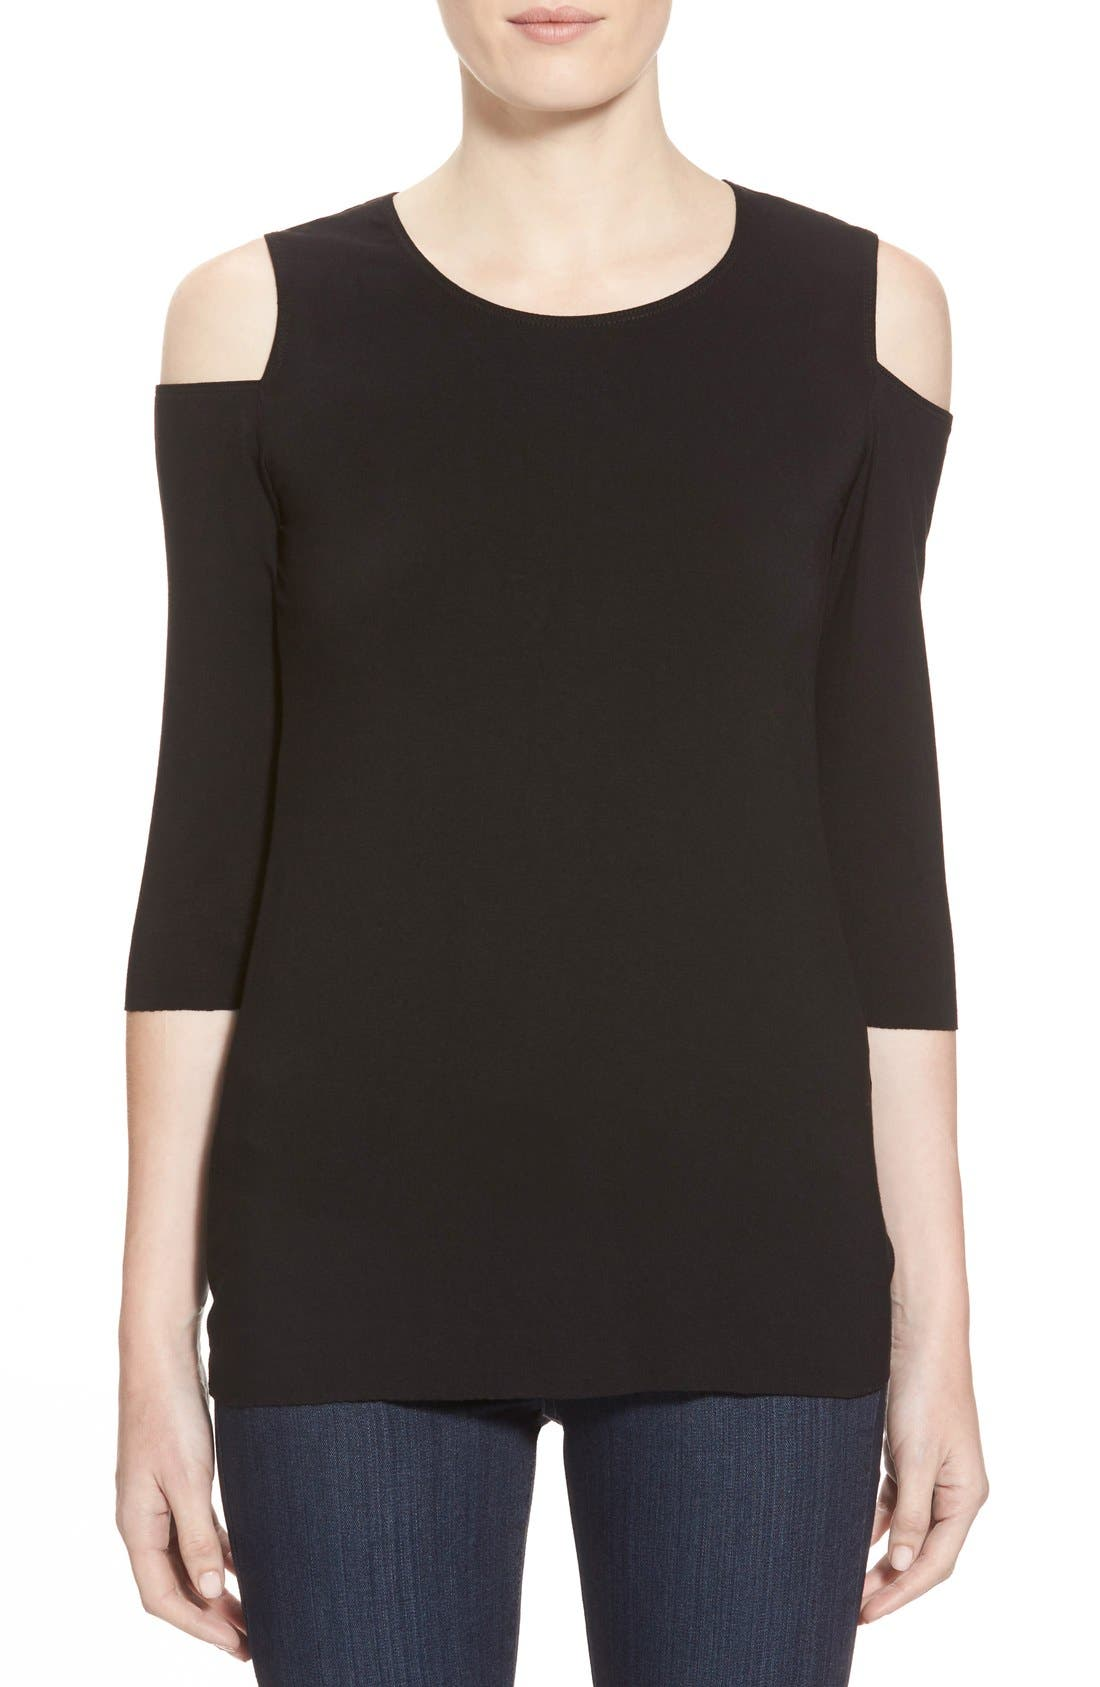 Alternate Image 1 Selected - Bailey 44 'Deneuve' Cold Shoulder Top